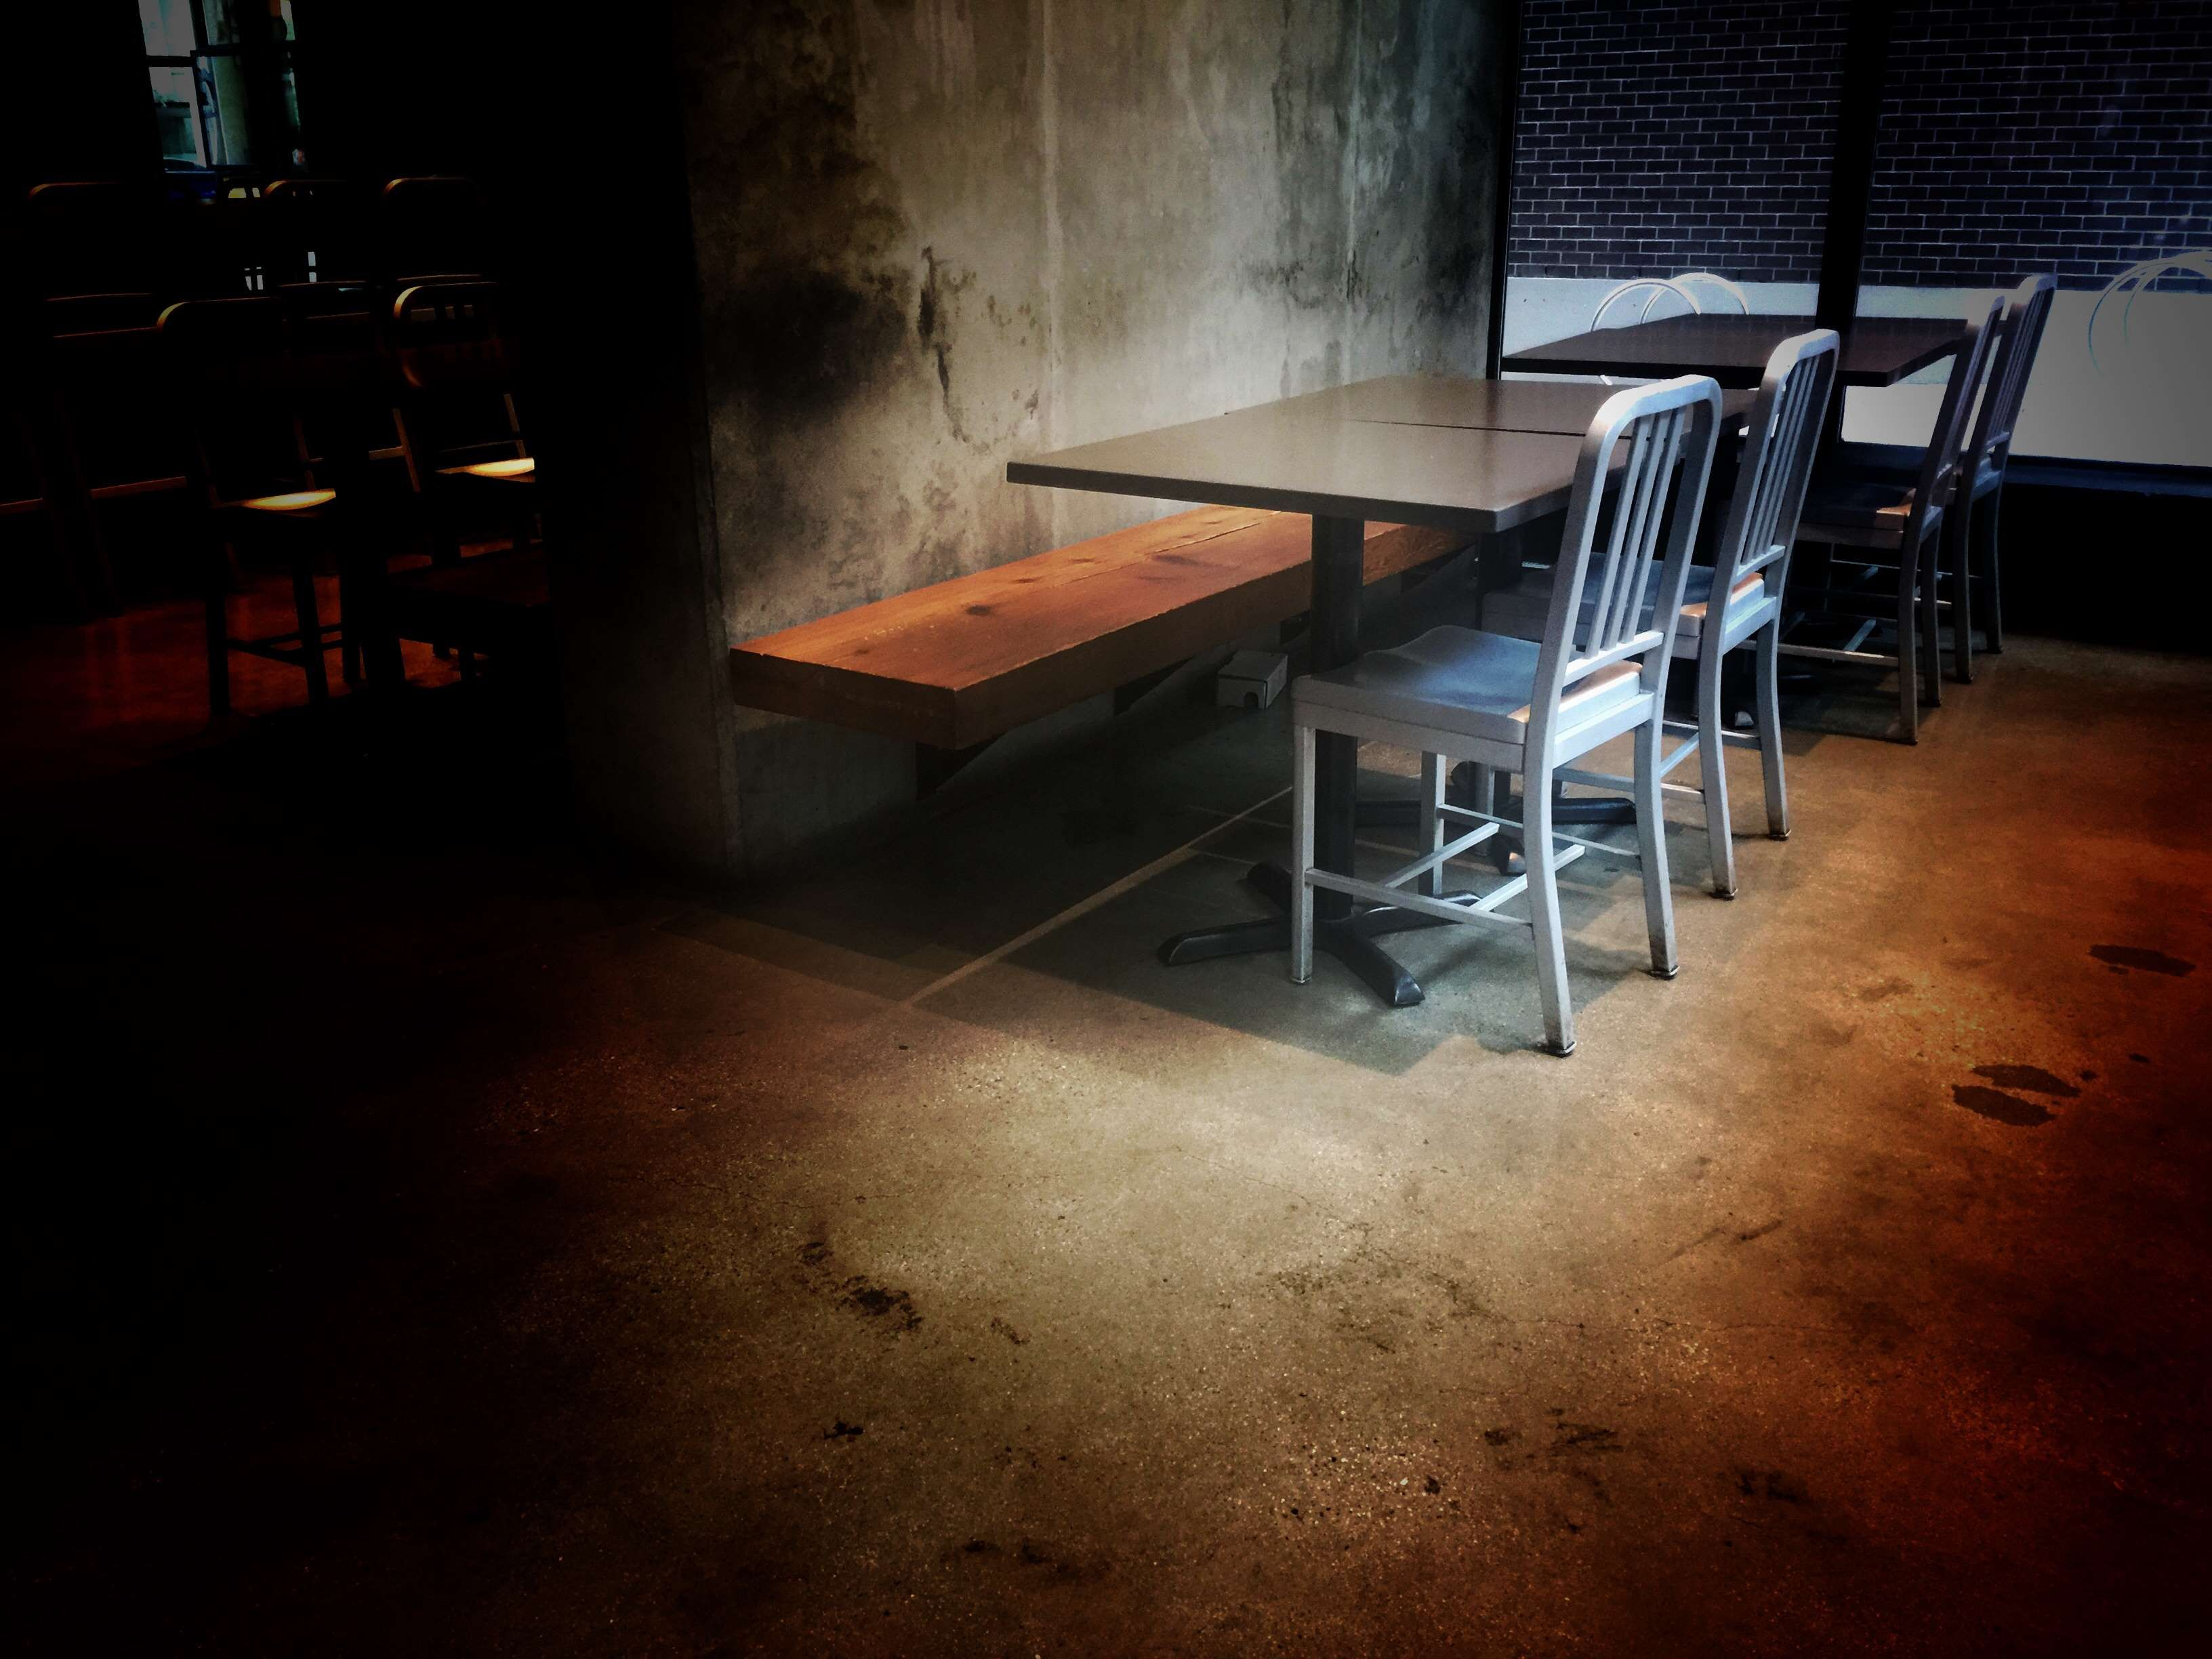 coffee shop #horror #metal chairs #rustic #scary